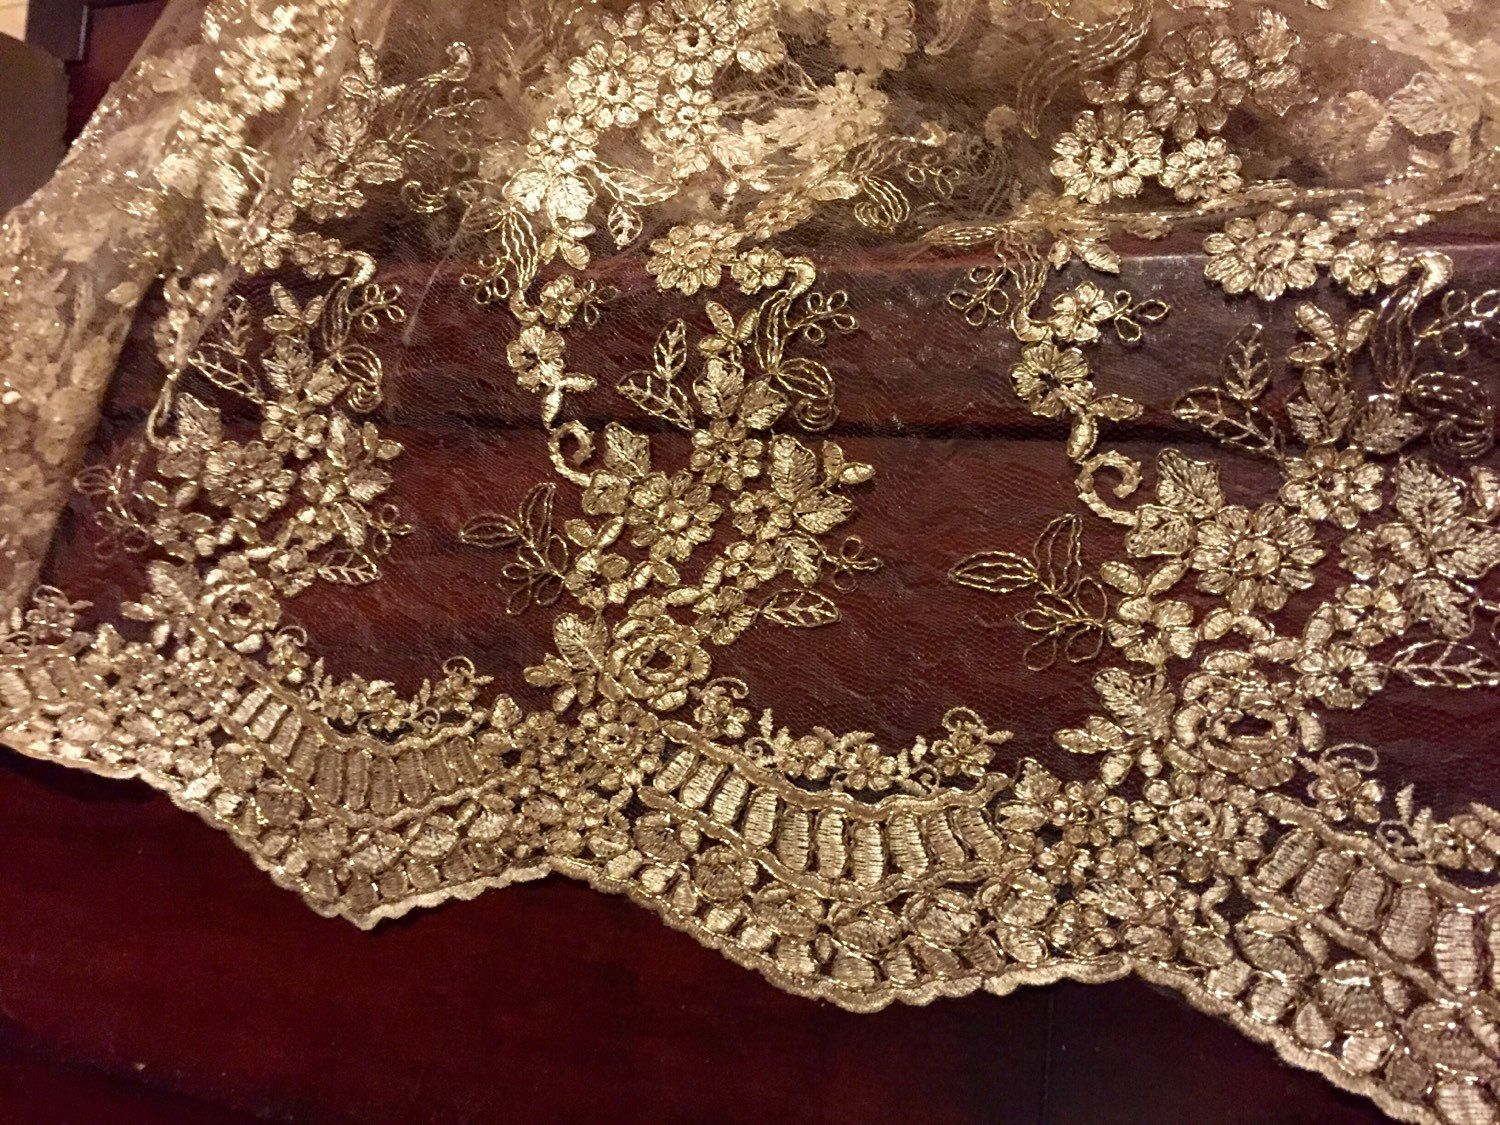 Gold Embroidered Lace Table Runner Tablecloth Overlay Home Decor Weddings By Fantasyfabricdesigns On Etsy